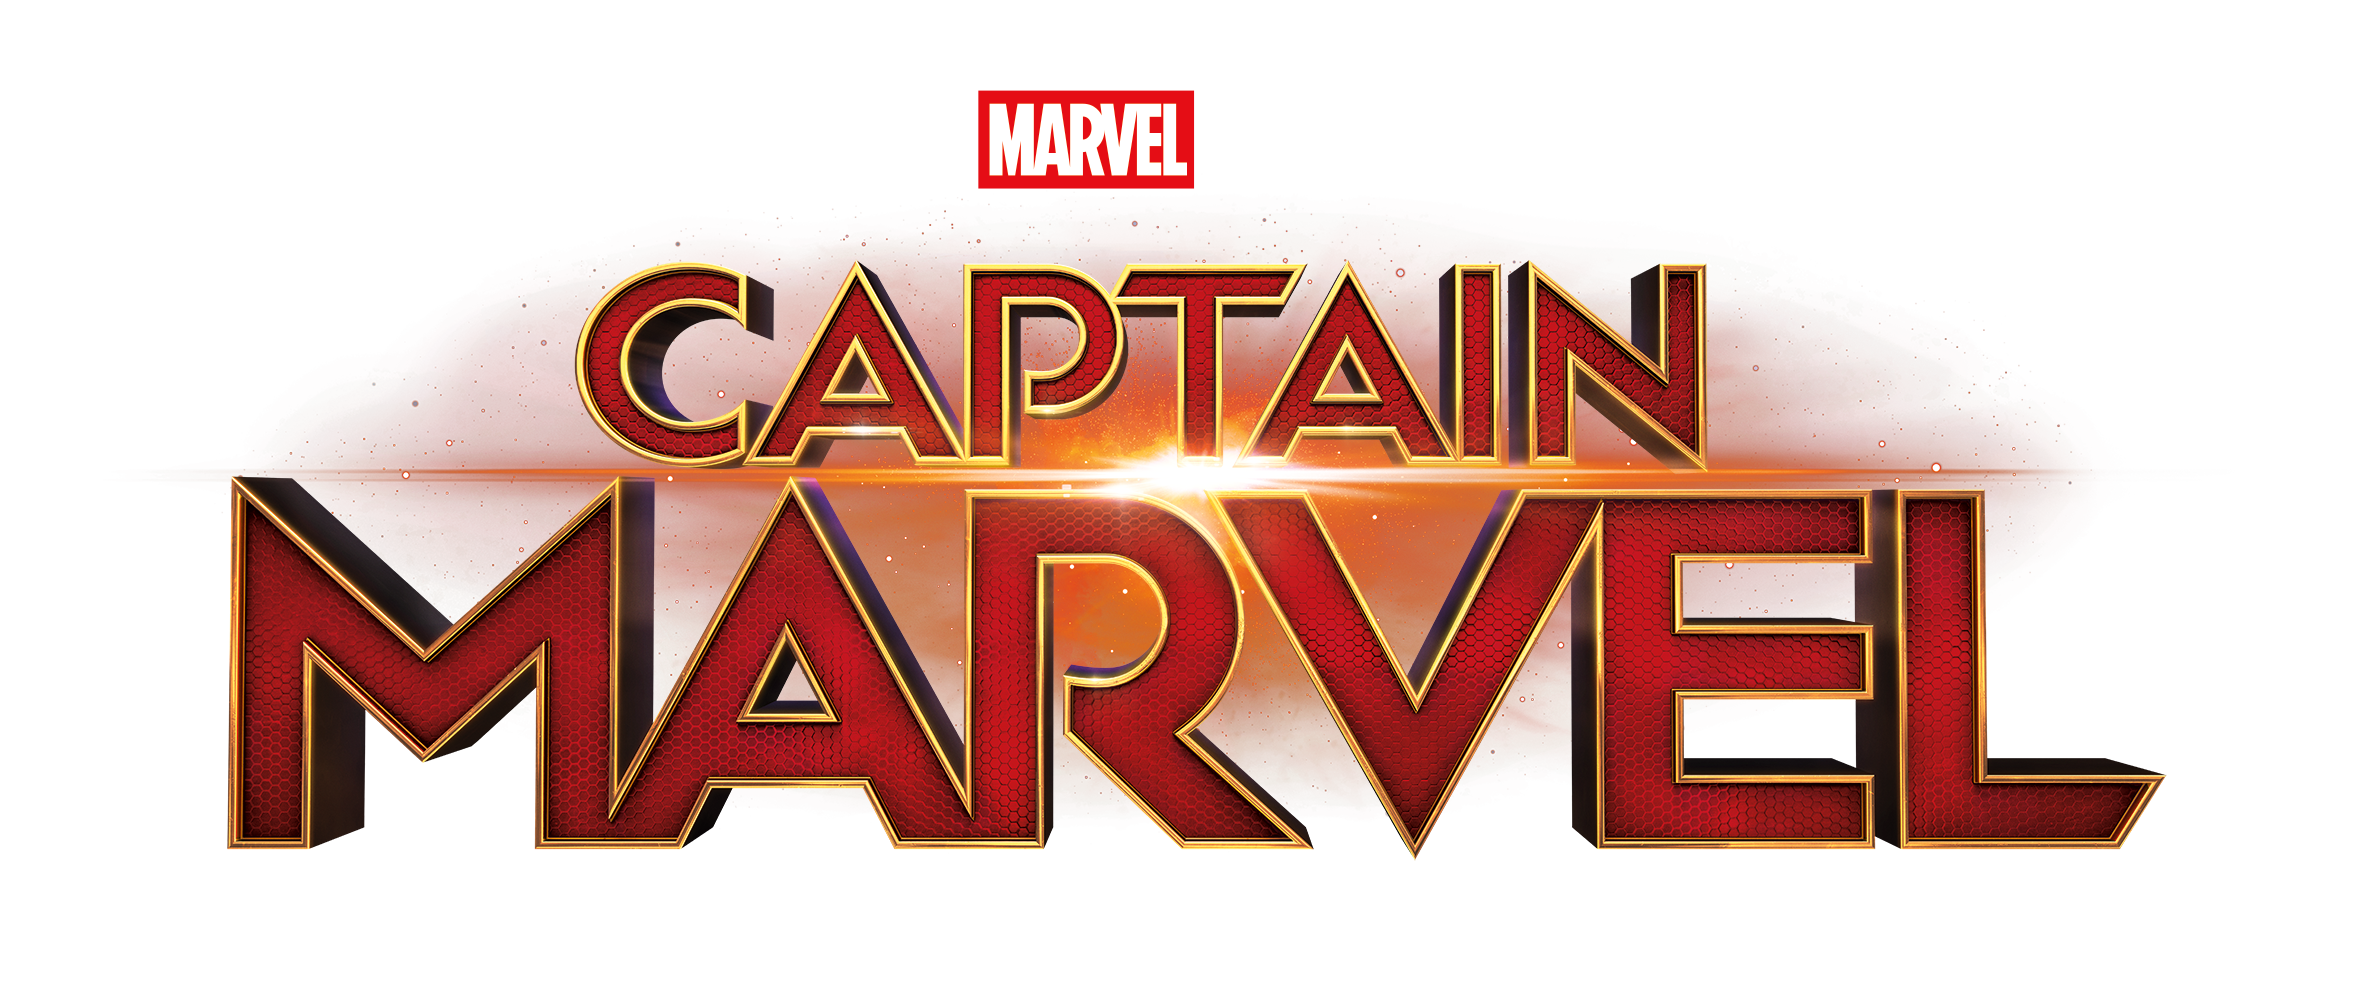 Captain marvel logo png. New official marvelstudios promotionalnew